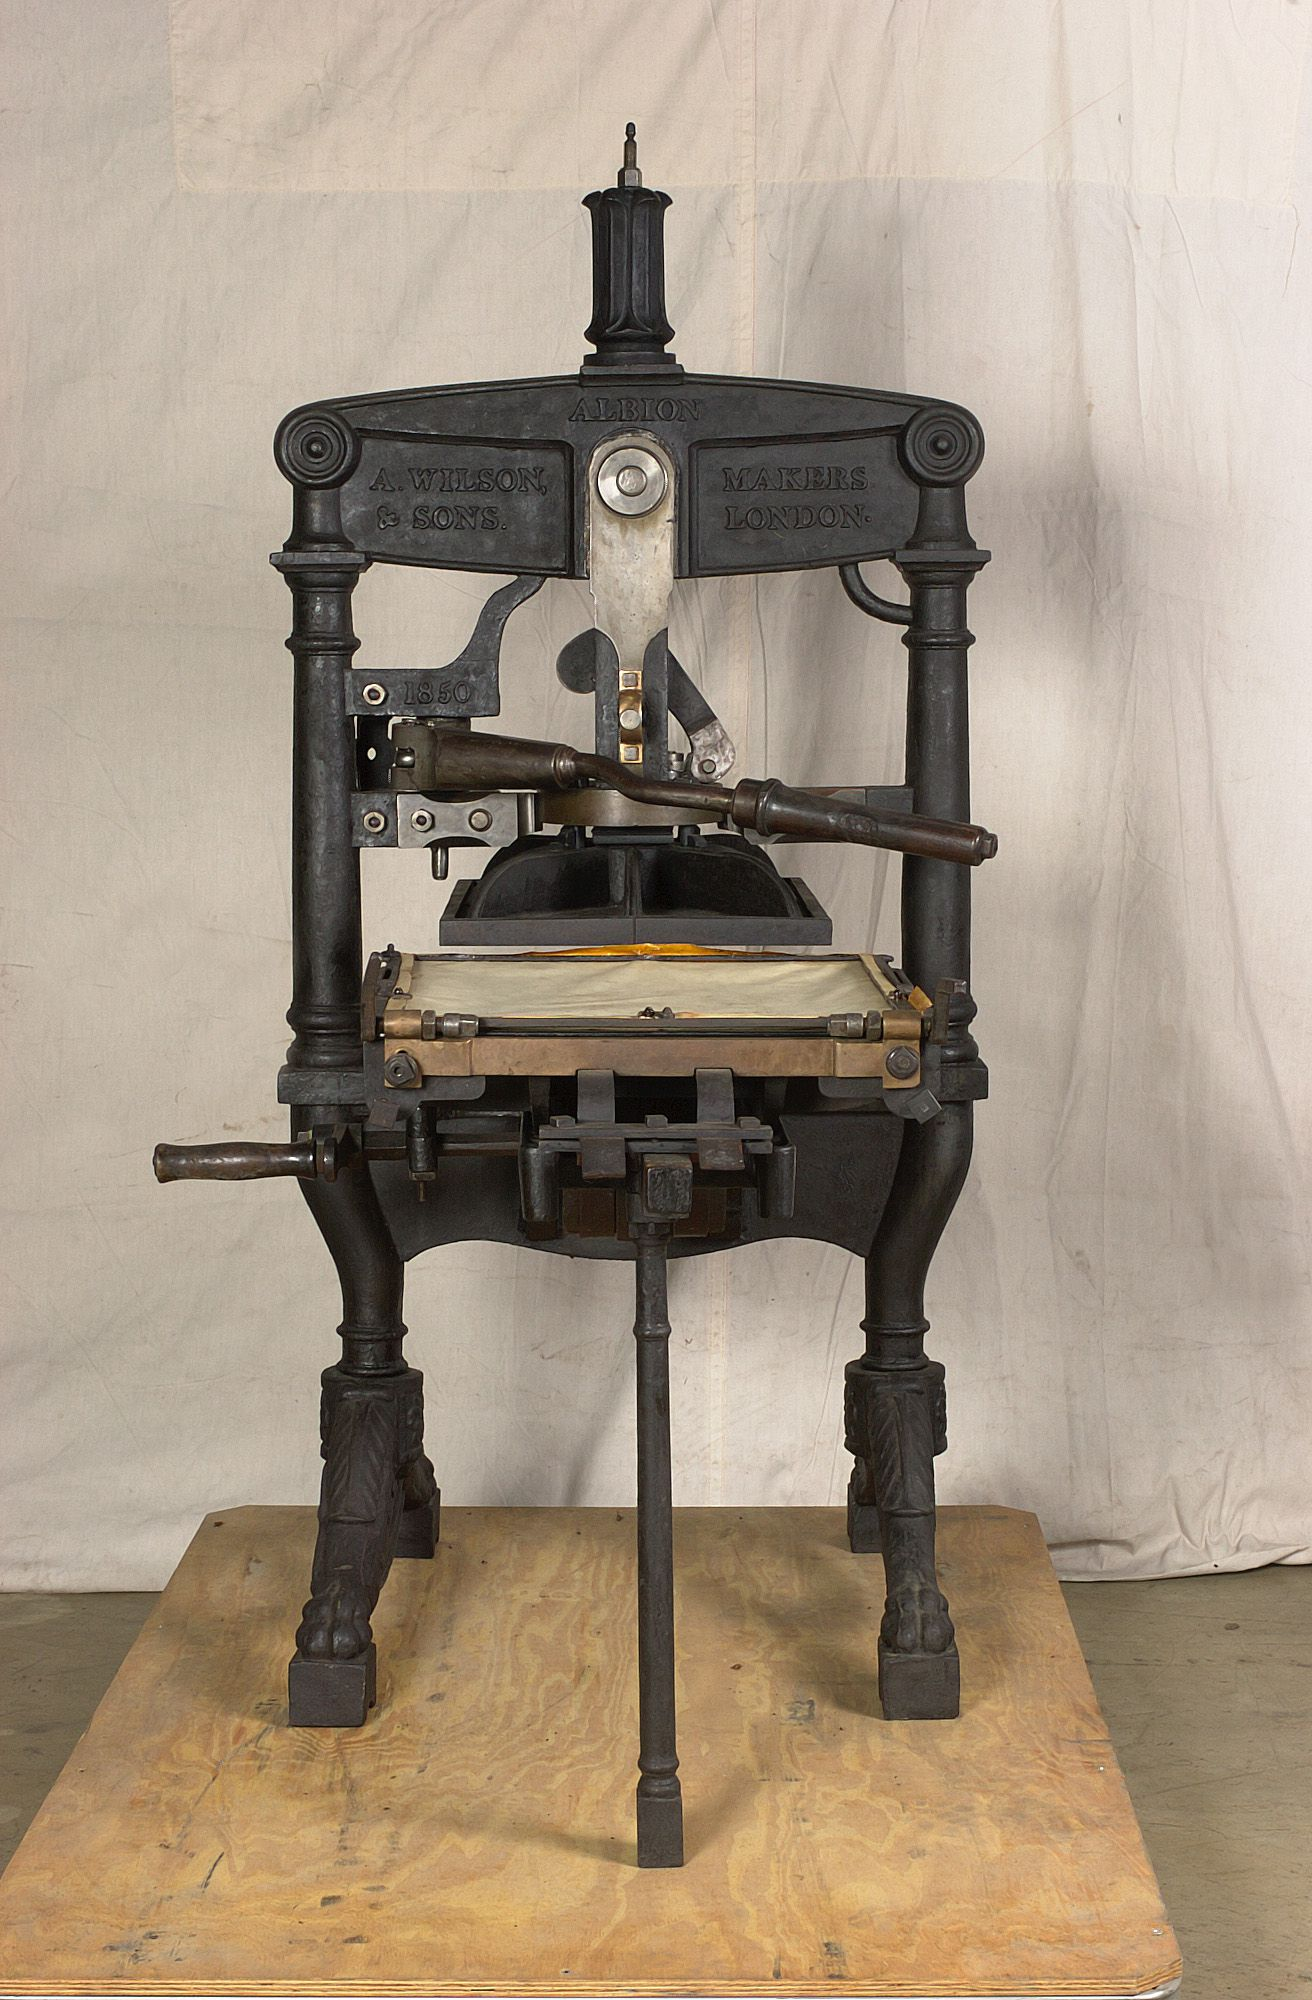 Albion hand printing press - MAAS Collection